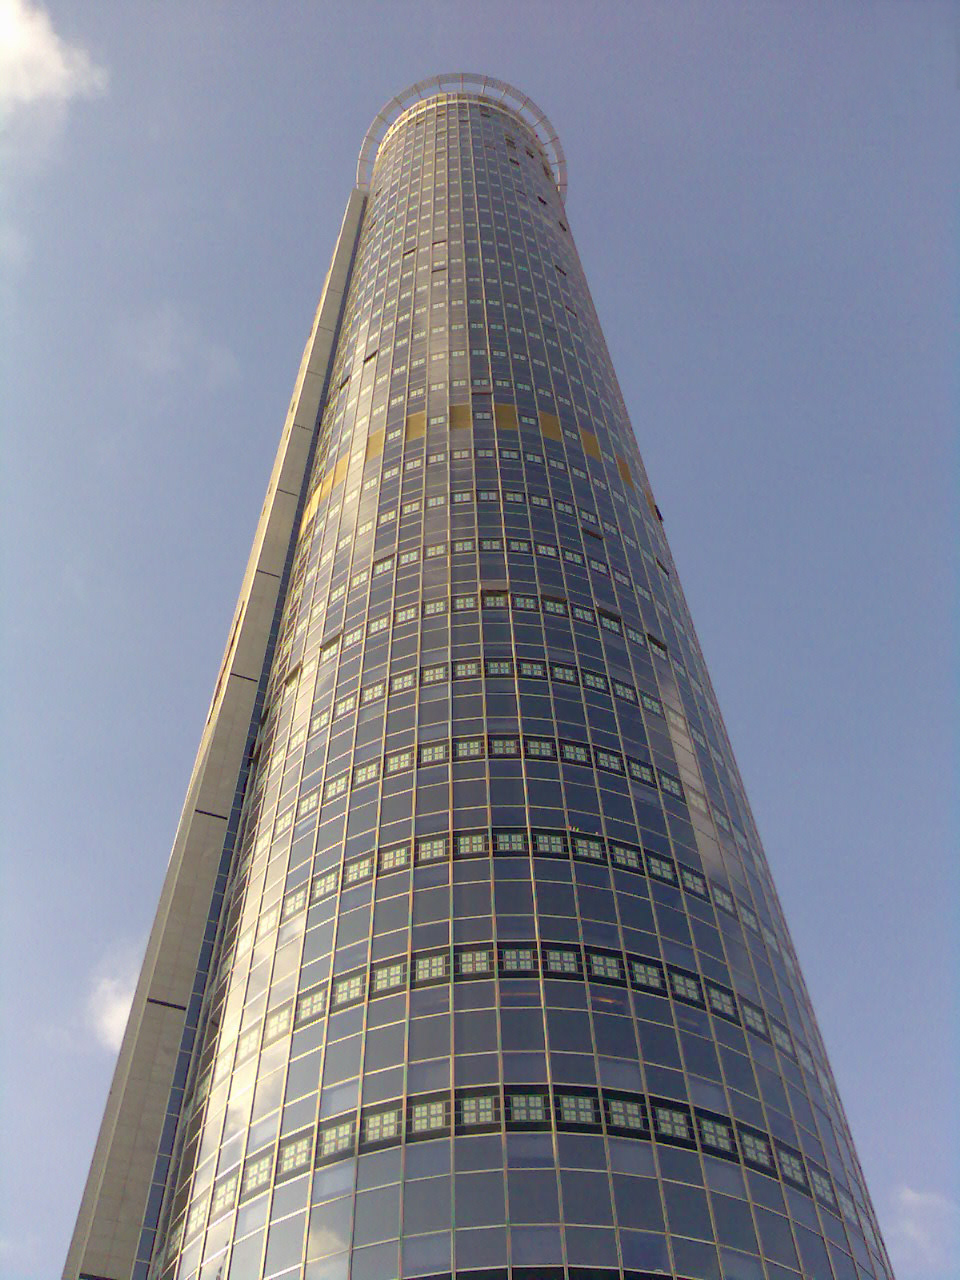 The Moshe Aviv Tower, currently Israel's tallest building. Credit: Wikimedia Commons.